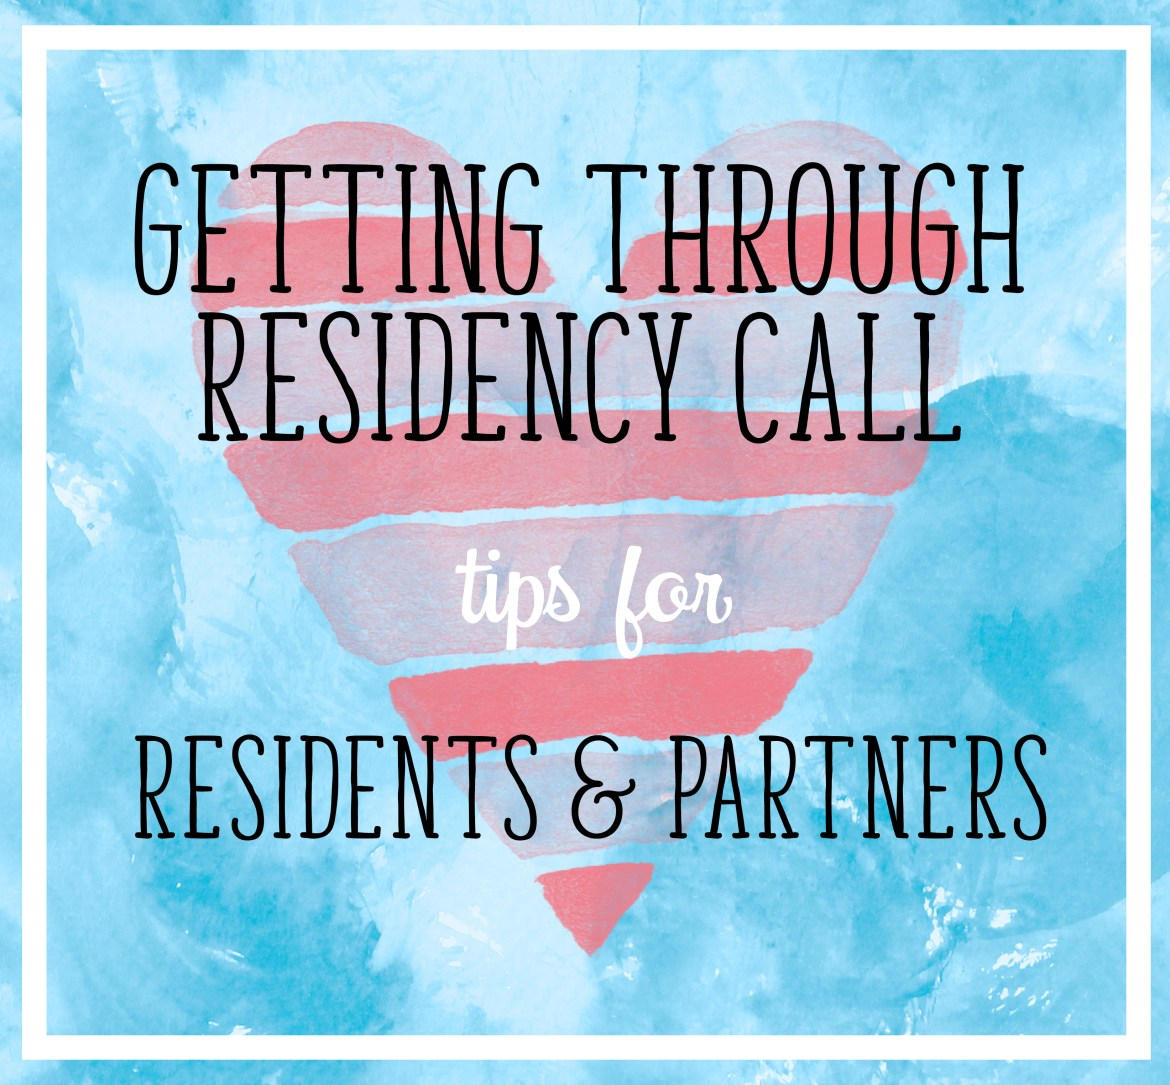 Getting Through Residency Call, Tips for Residents and Partners